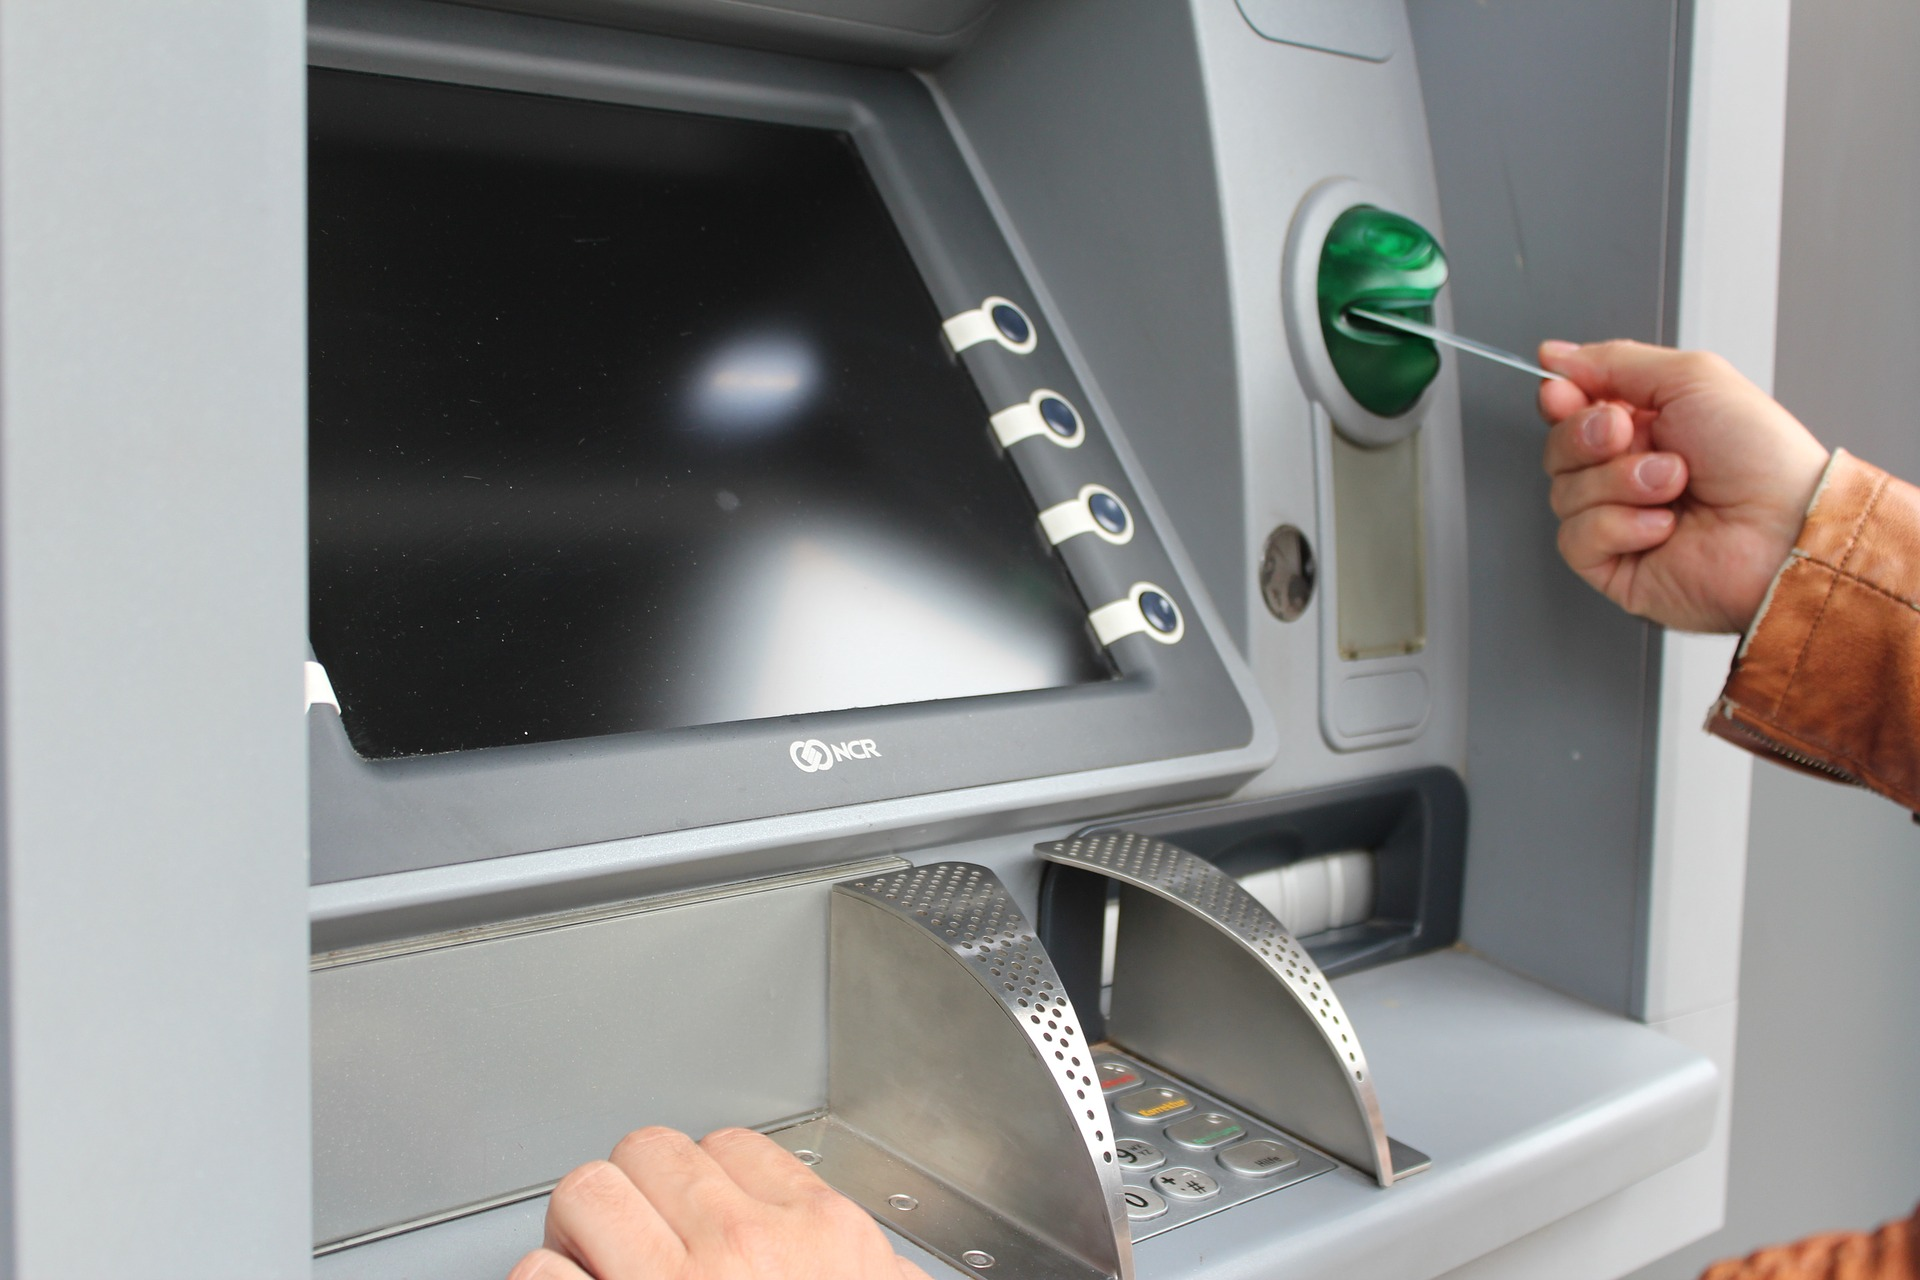 Athena is Getting Ready to Send 1500 Bitcoin ATMs to El Salvador